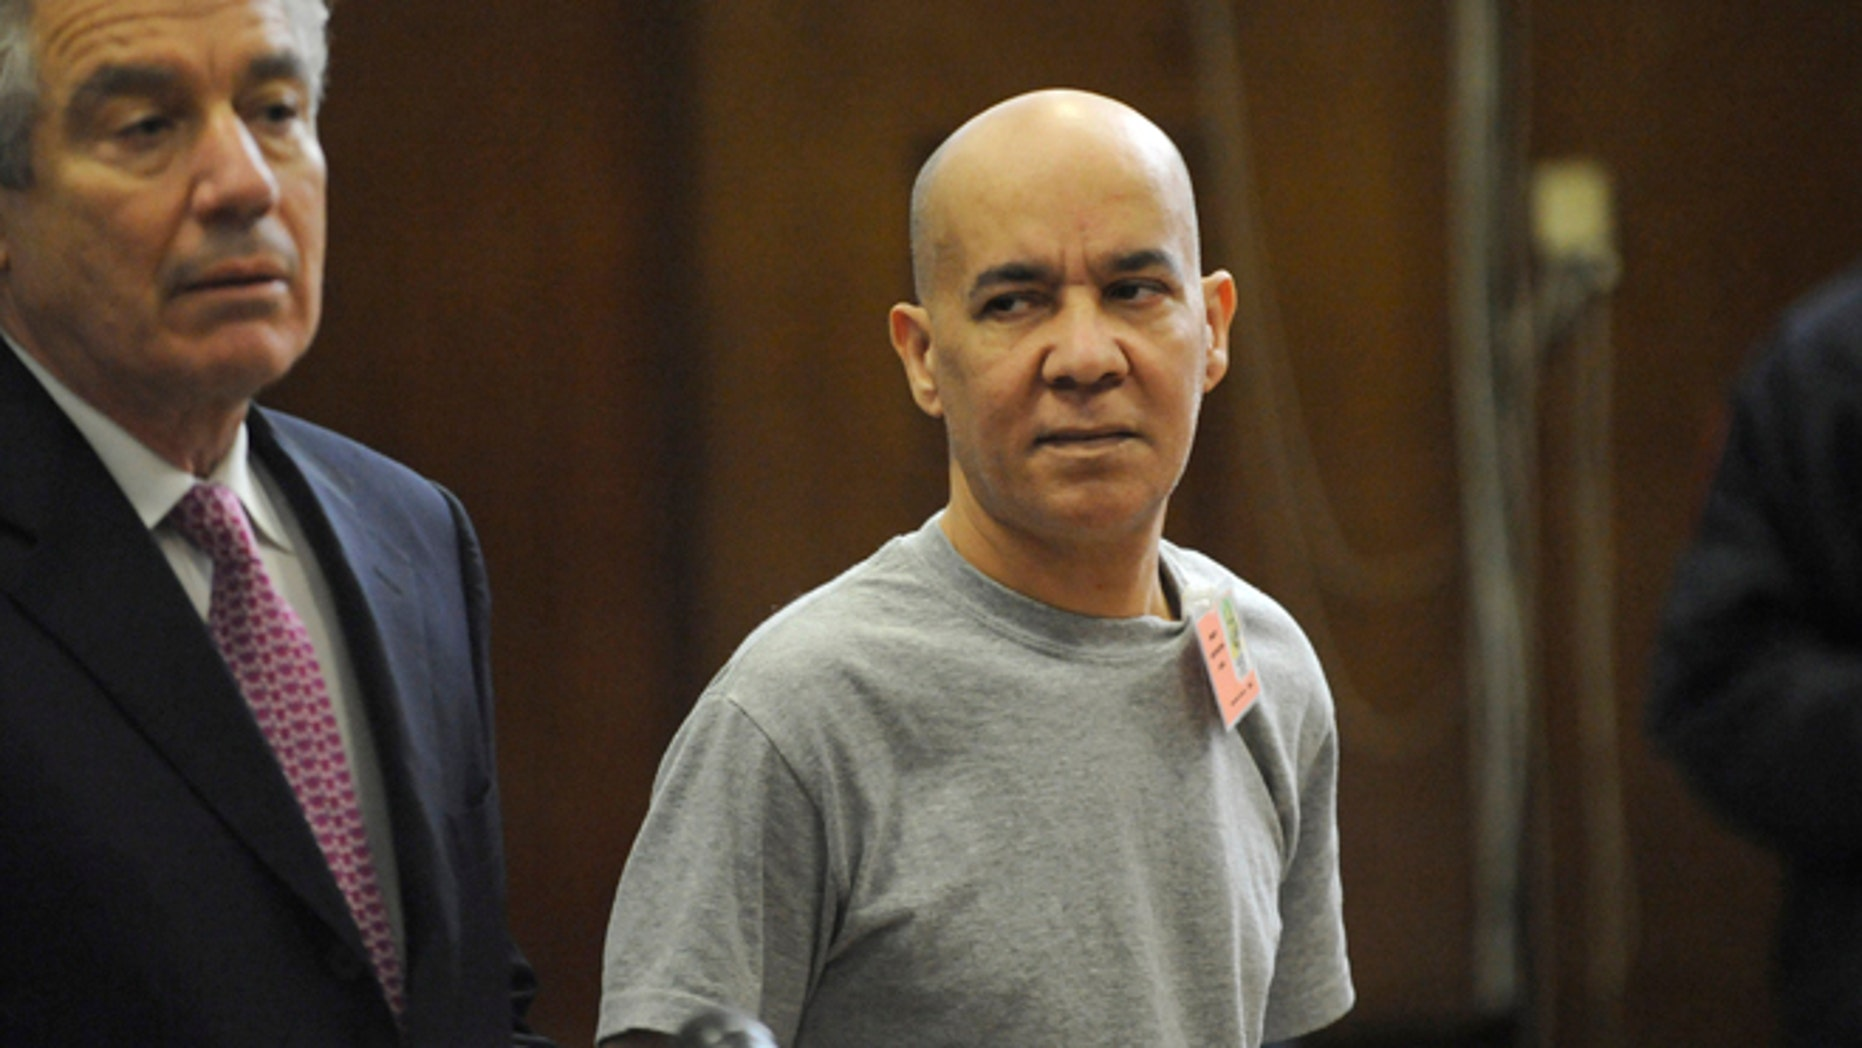 Pedro Hernandez in Manhattan criminal court in a Nov. 2012 file photo.